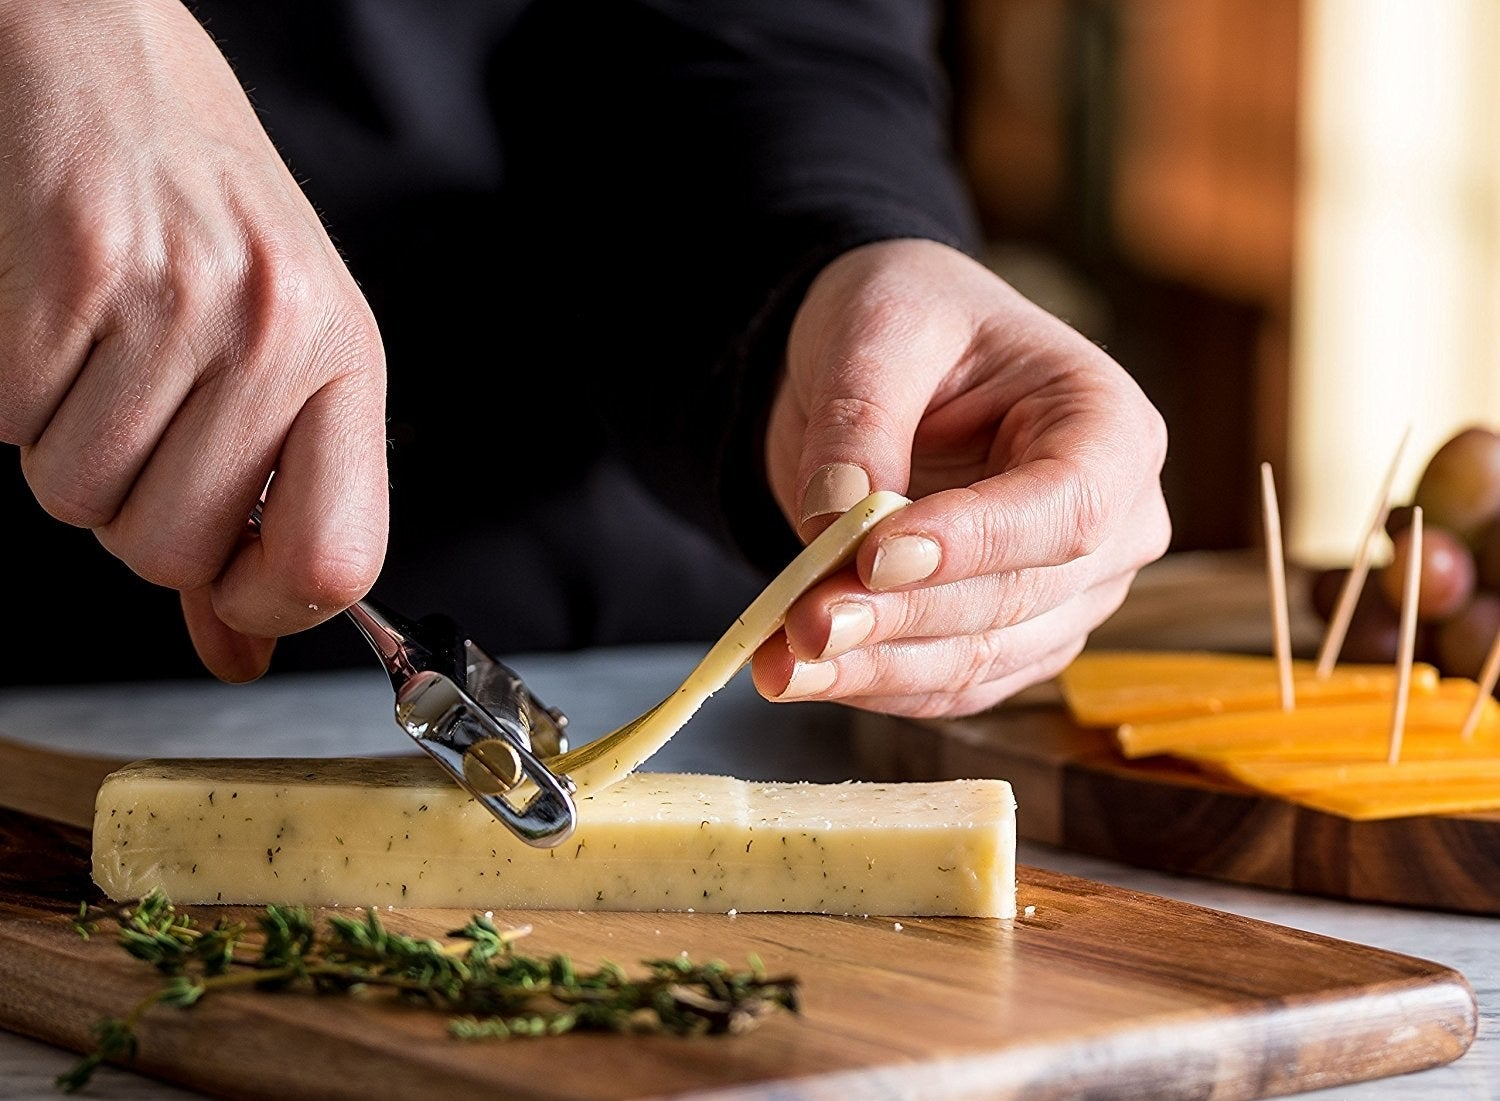 A model slicing cheese from a block with the stainless steel slicer